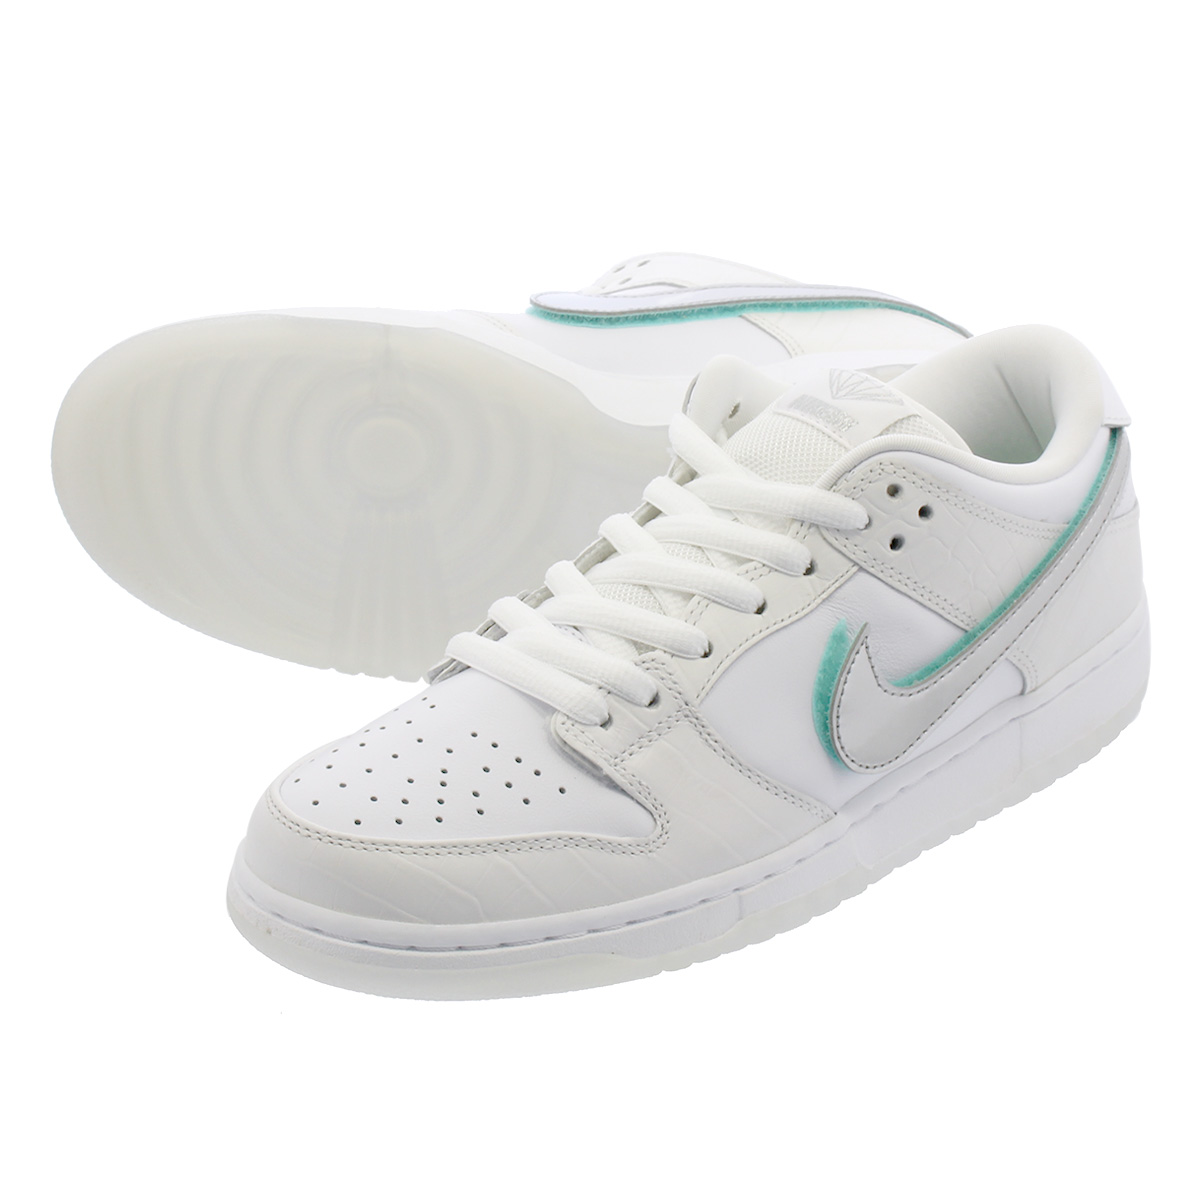 NIKE SB DUNK LOW PRO OG QS 【DIAMOND】 ナイキ SB ダンク ロー プロ オージー QS WHITE/CHROME/WHITE/TROPICAL TWIST bv1310-100